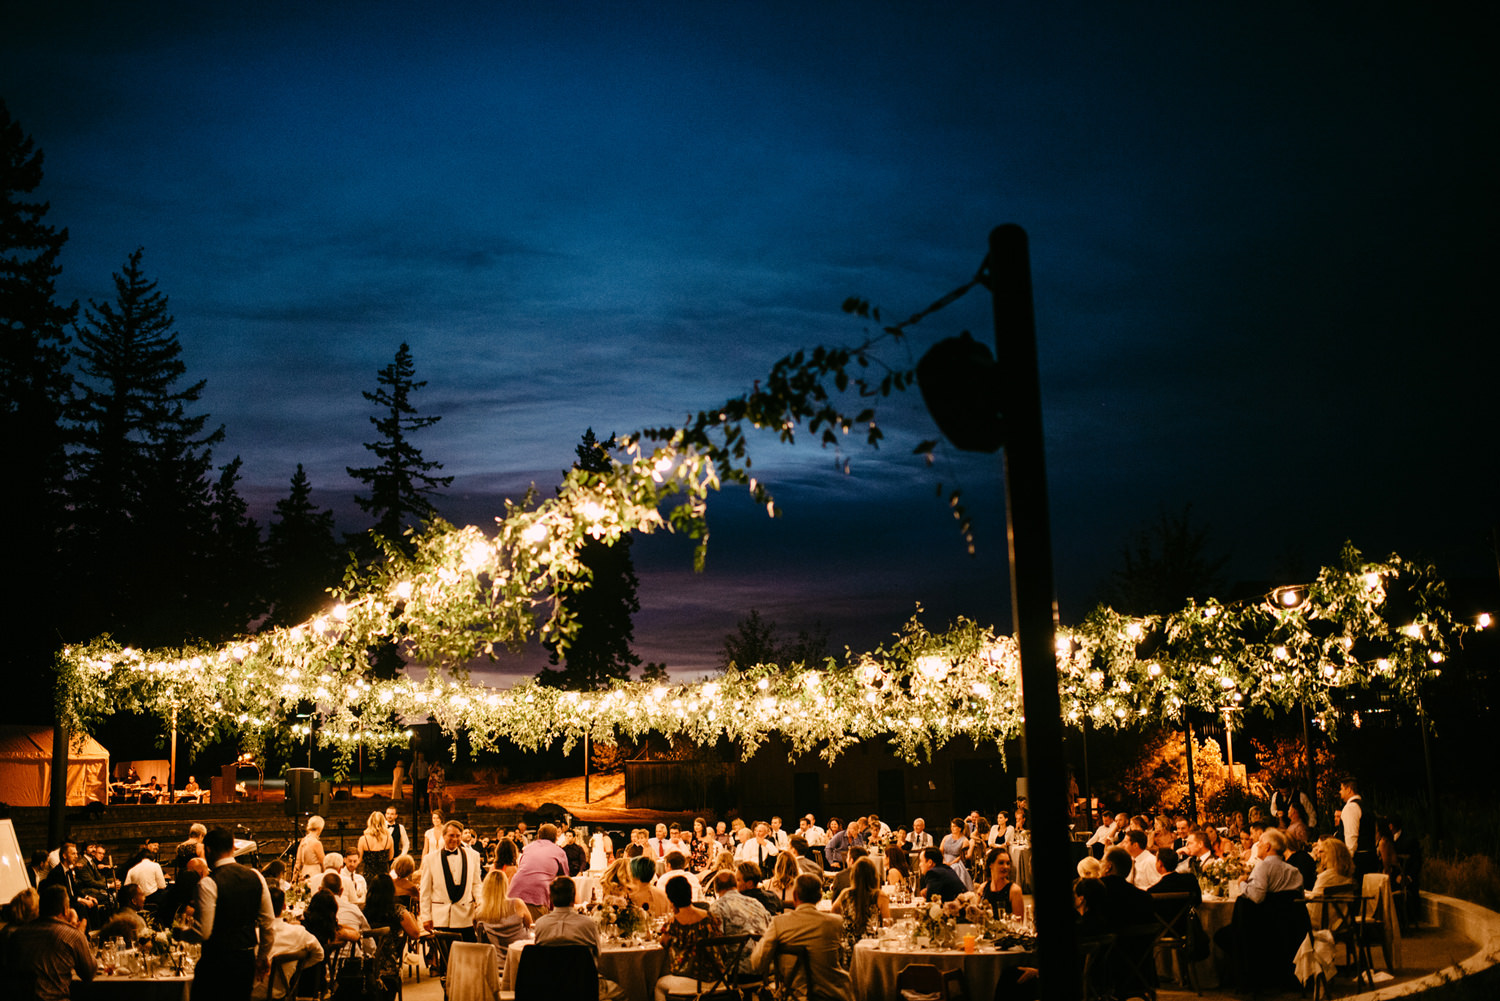 313-bright-coral-wedding-with-sinclair-and-moore-at-suncadia-resort.jpg